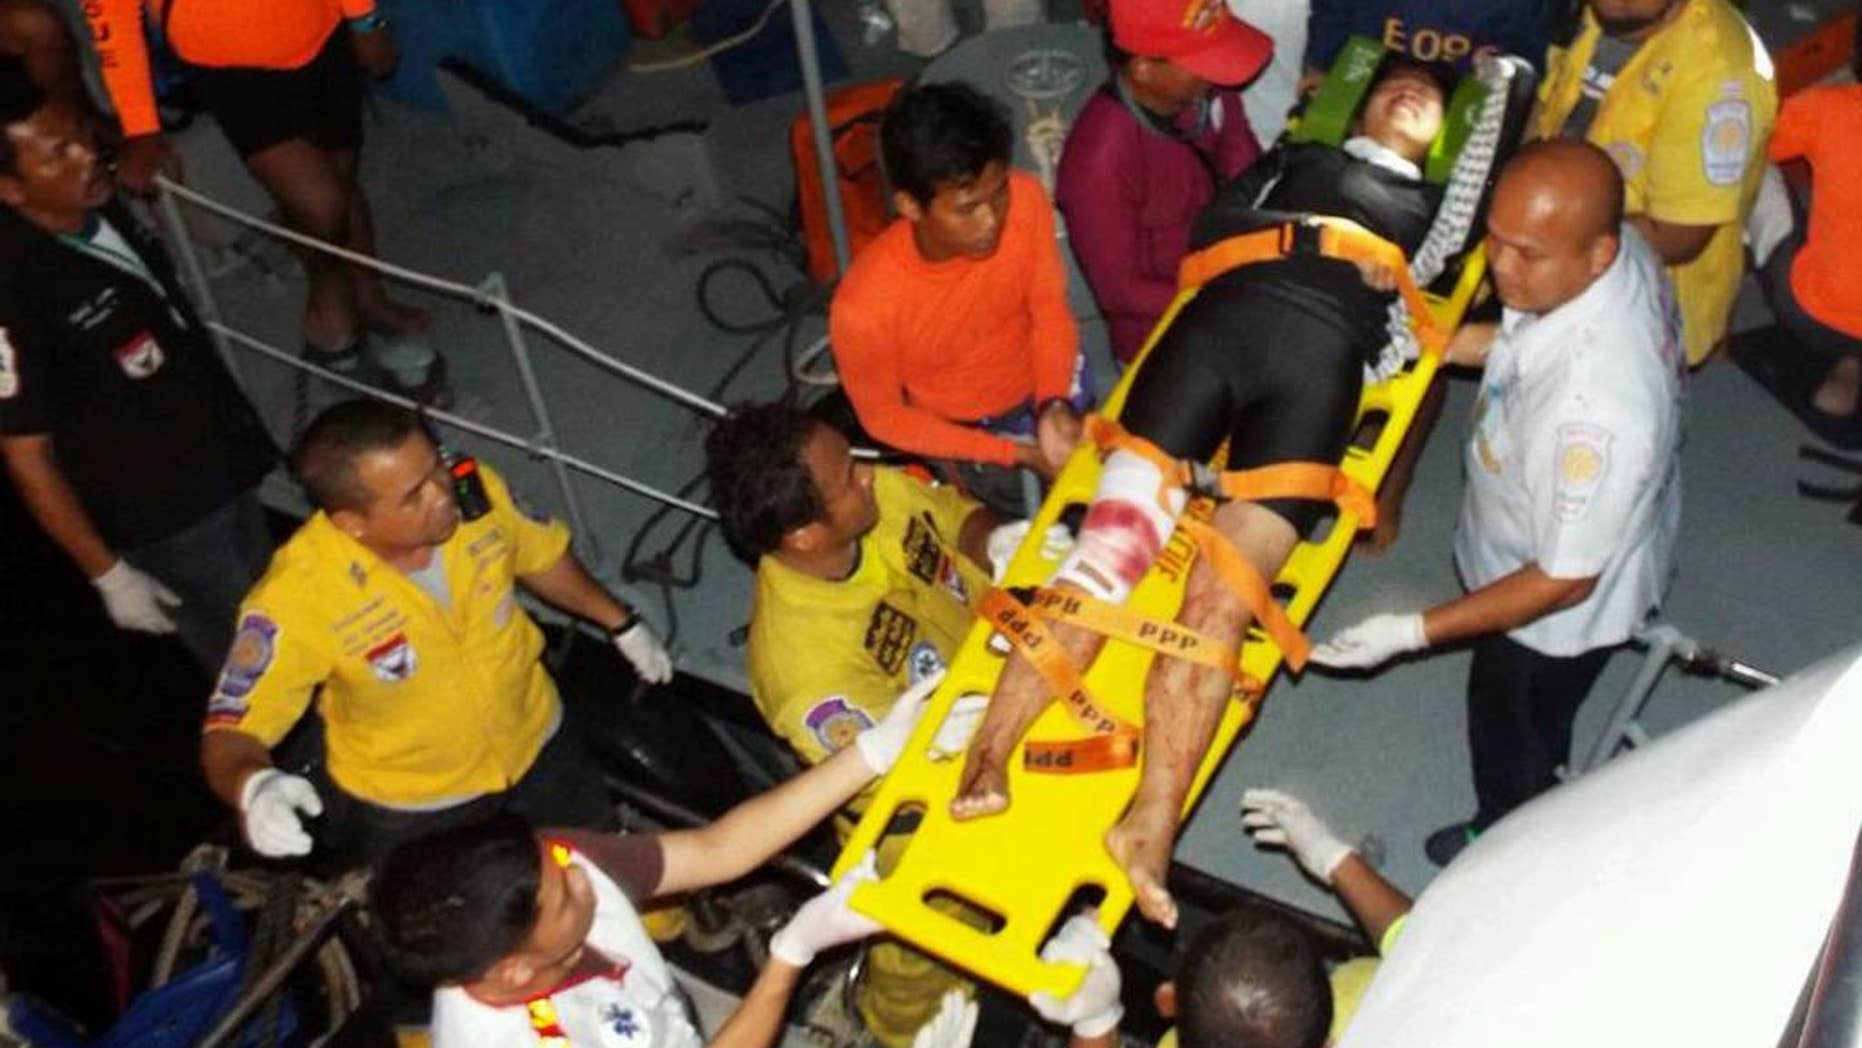 Thai rescue workers  move  a injured tourist on stretcher to hospital  after a fishing boat crashed with a speed boat, carrying tourists from Koh Phi Phi island to a pier in Phuket. Thailand Sunday  Oct. 19, 2014. 27 tourists injured and two are  missing.(AP Photo) THAILAND OUT